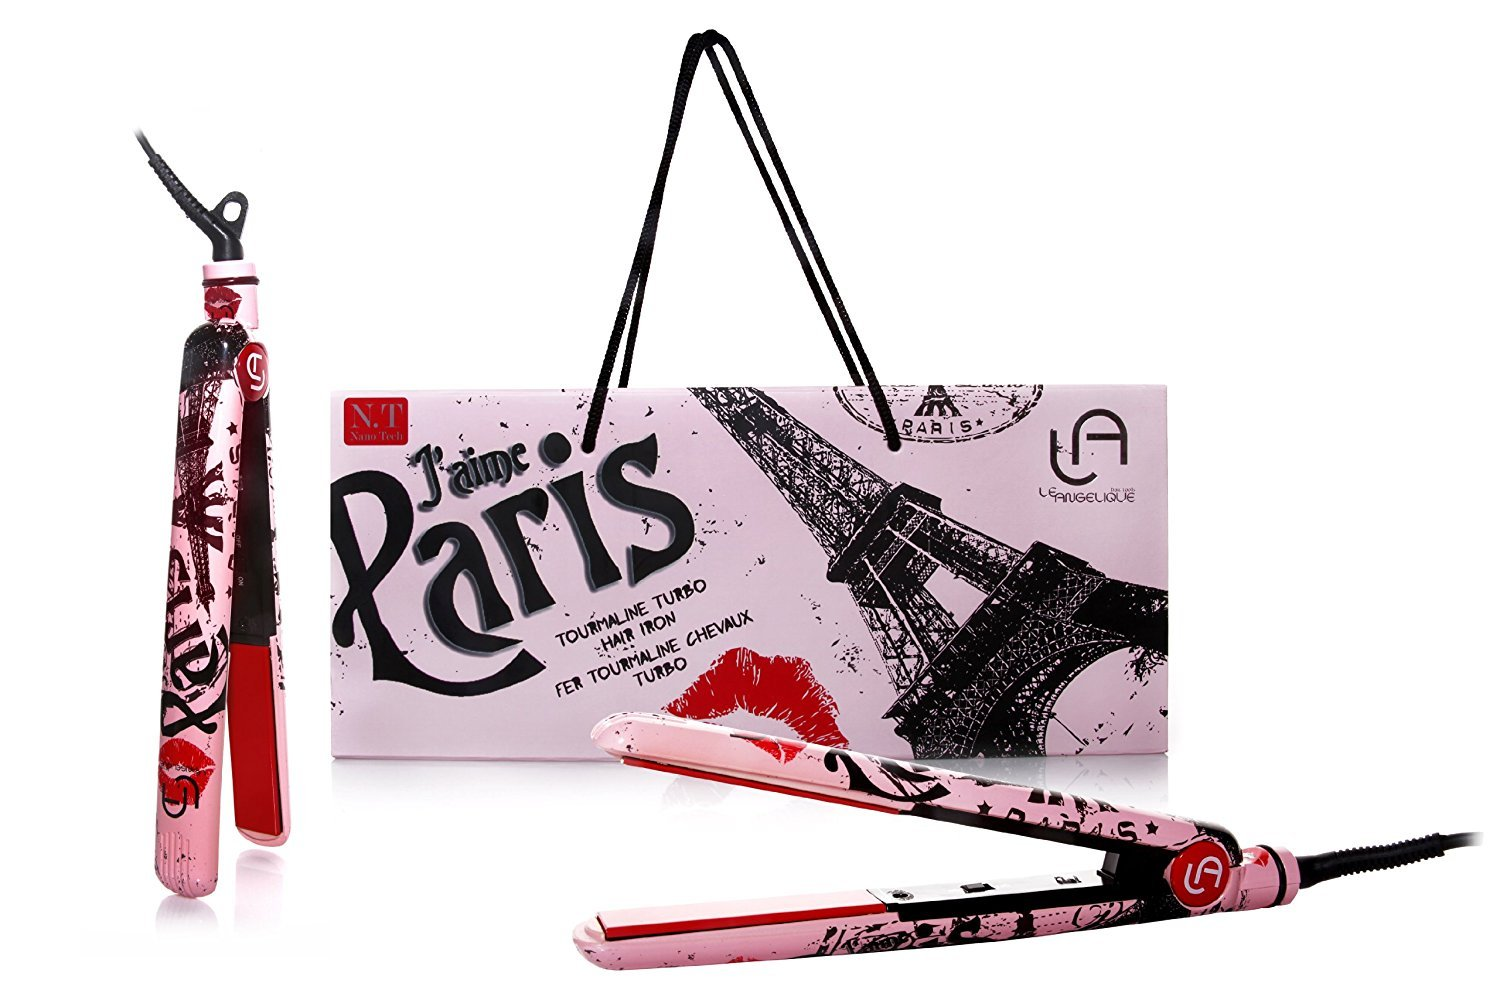 Le Angelique Flat Iron, Paris SFR Products 3056